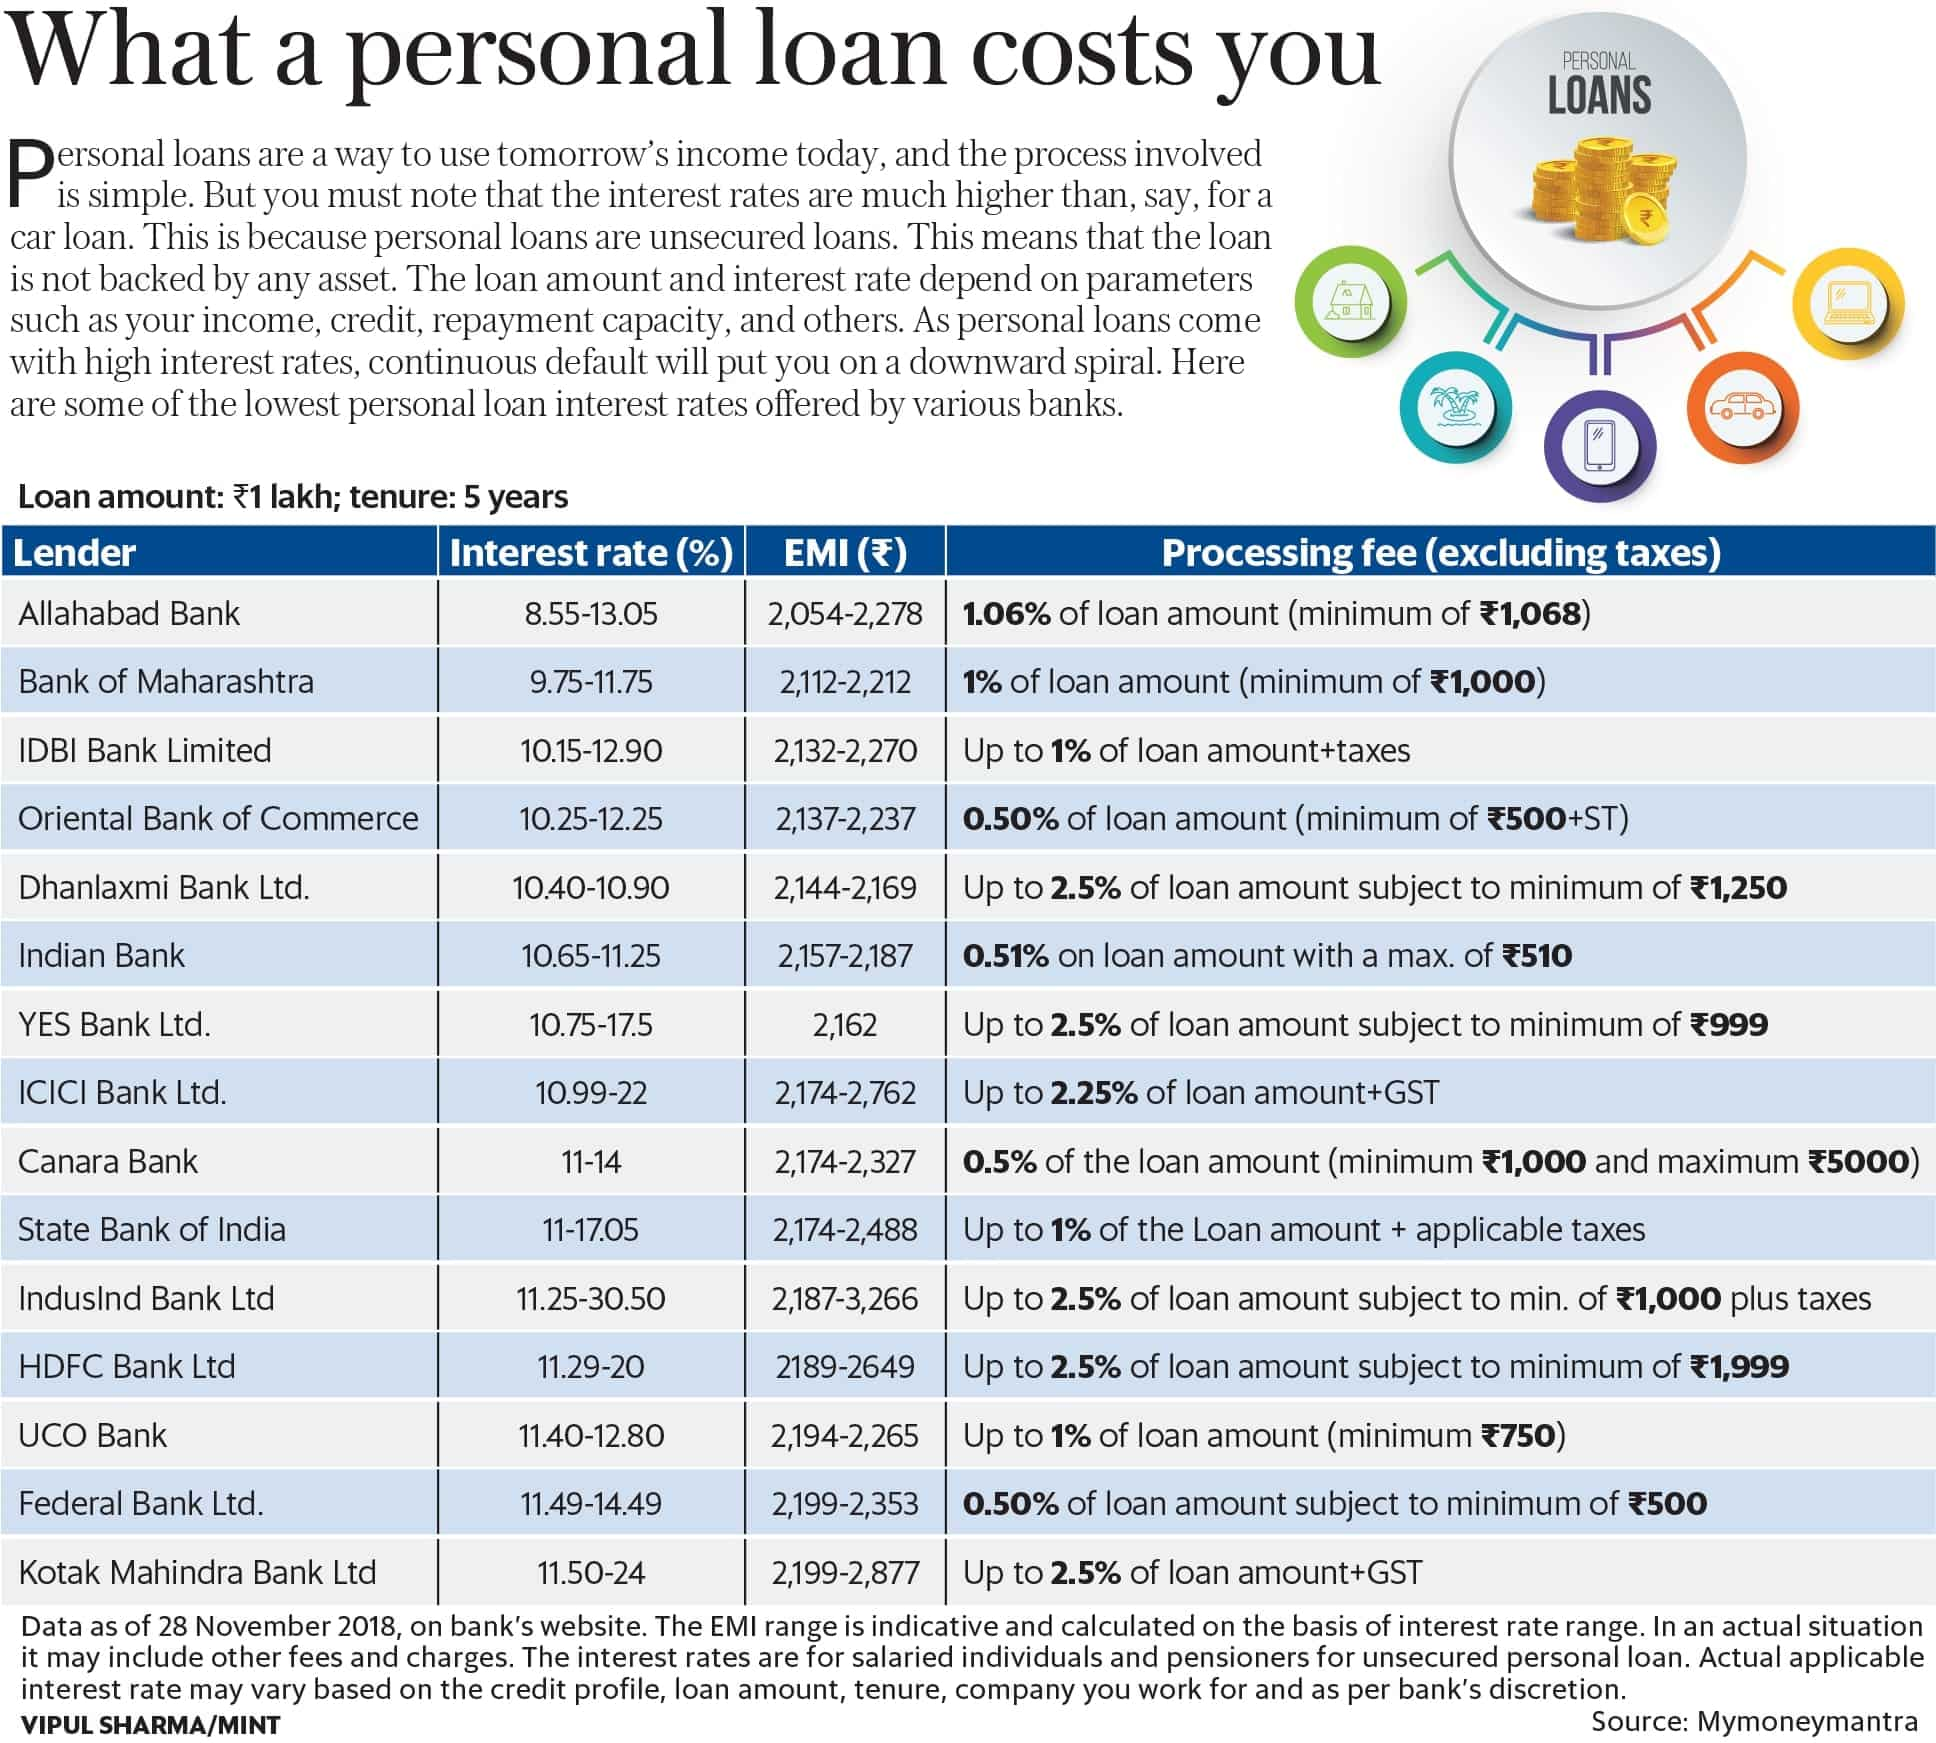 personal loan interest rates in hdfc bank 2018